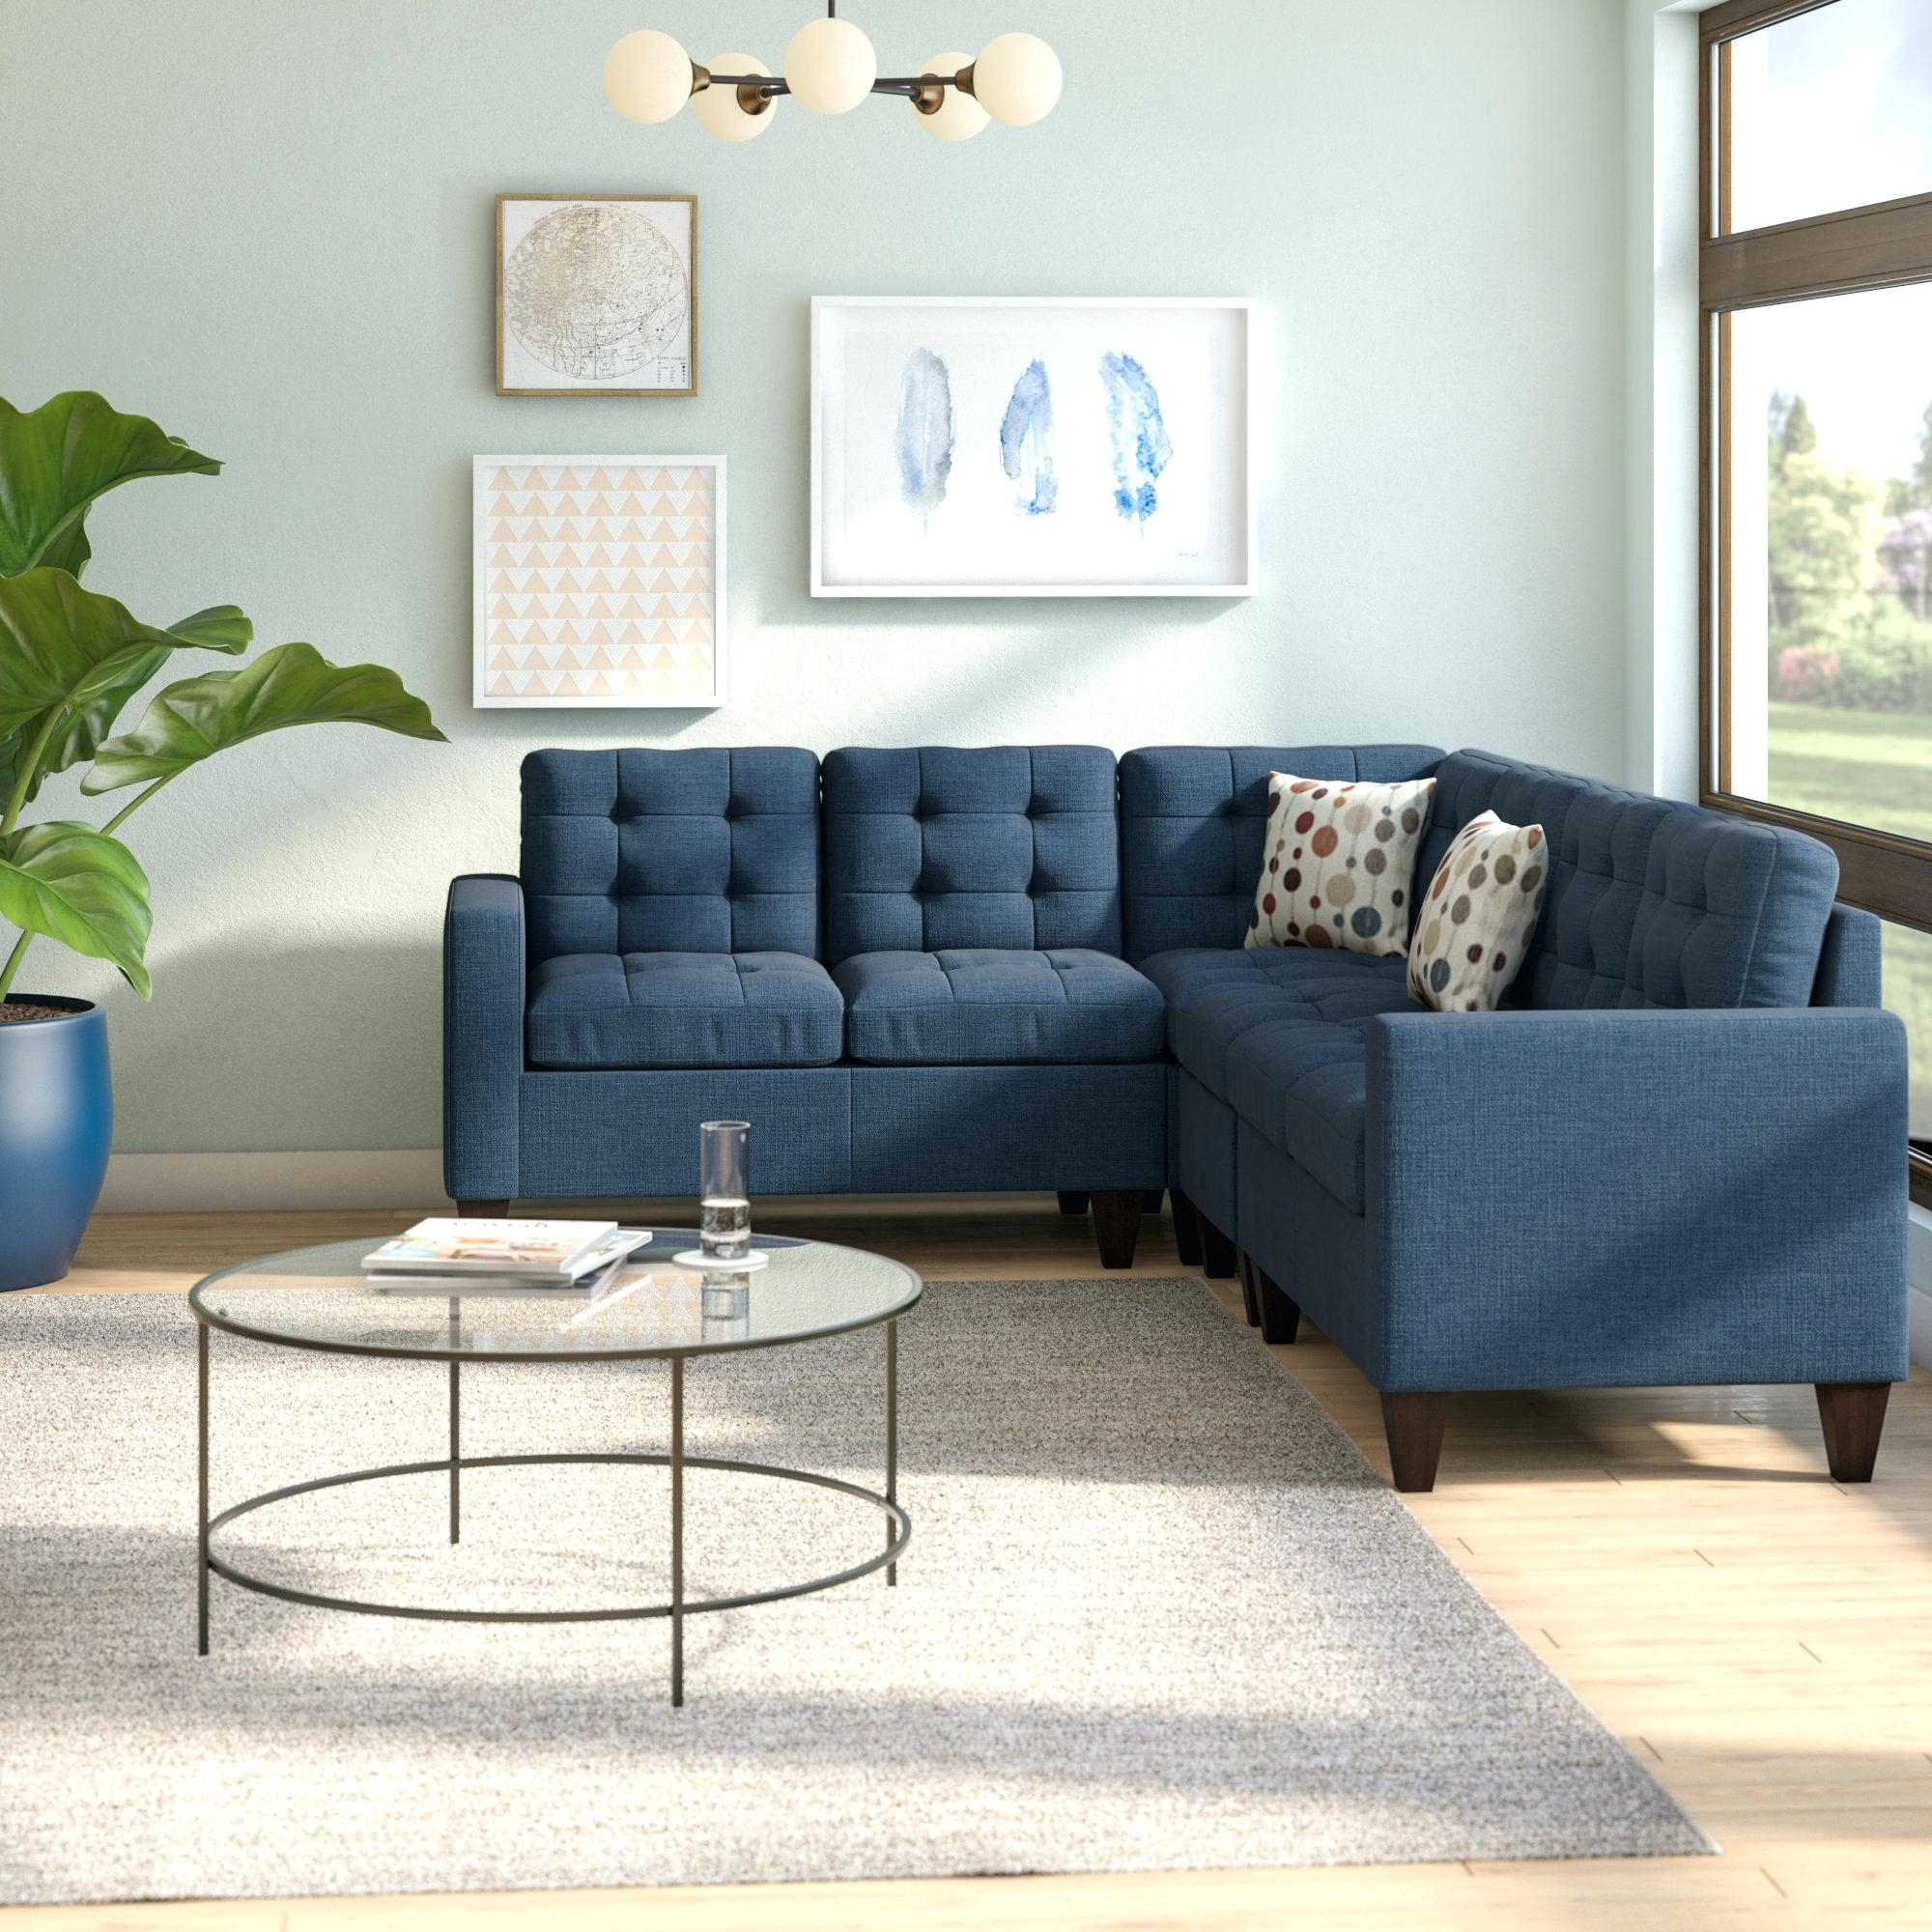 Sectional Couch In Toronto: 10 Ideas Of Ottawa Sale Sectional Sofas